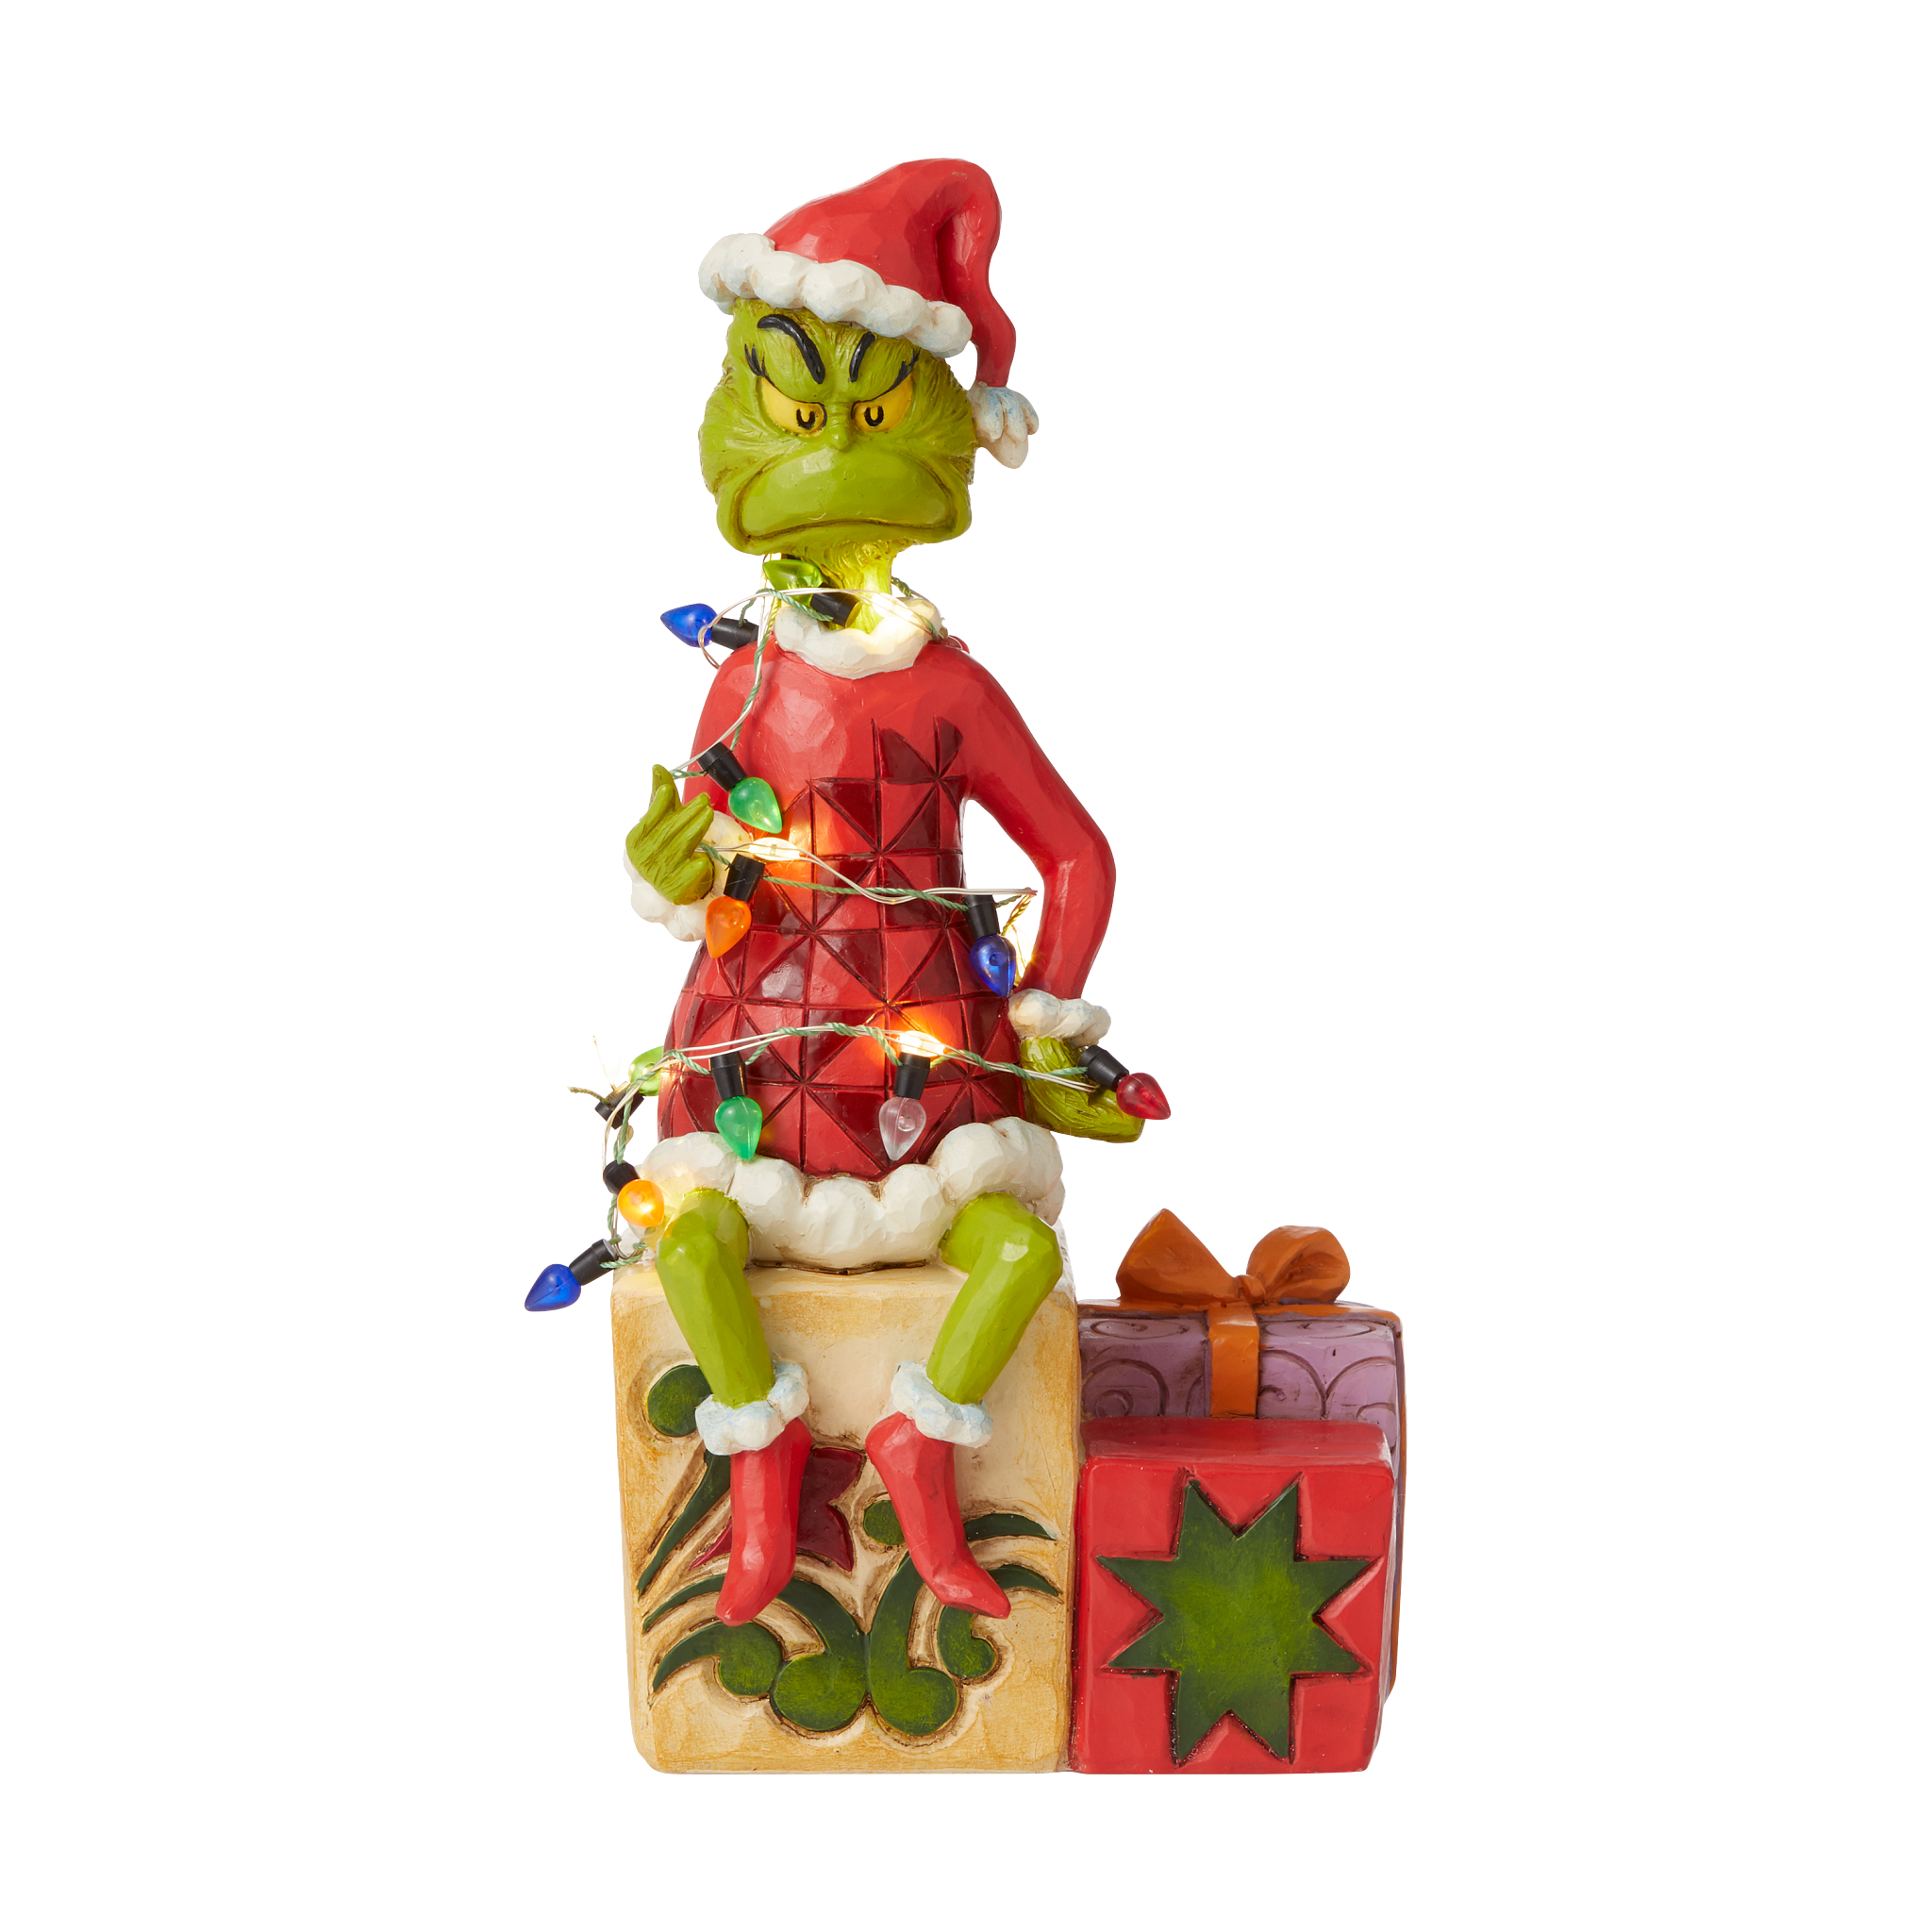 Jim Shore - Figurines 'Grinch with String of Lights N' 2021